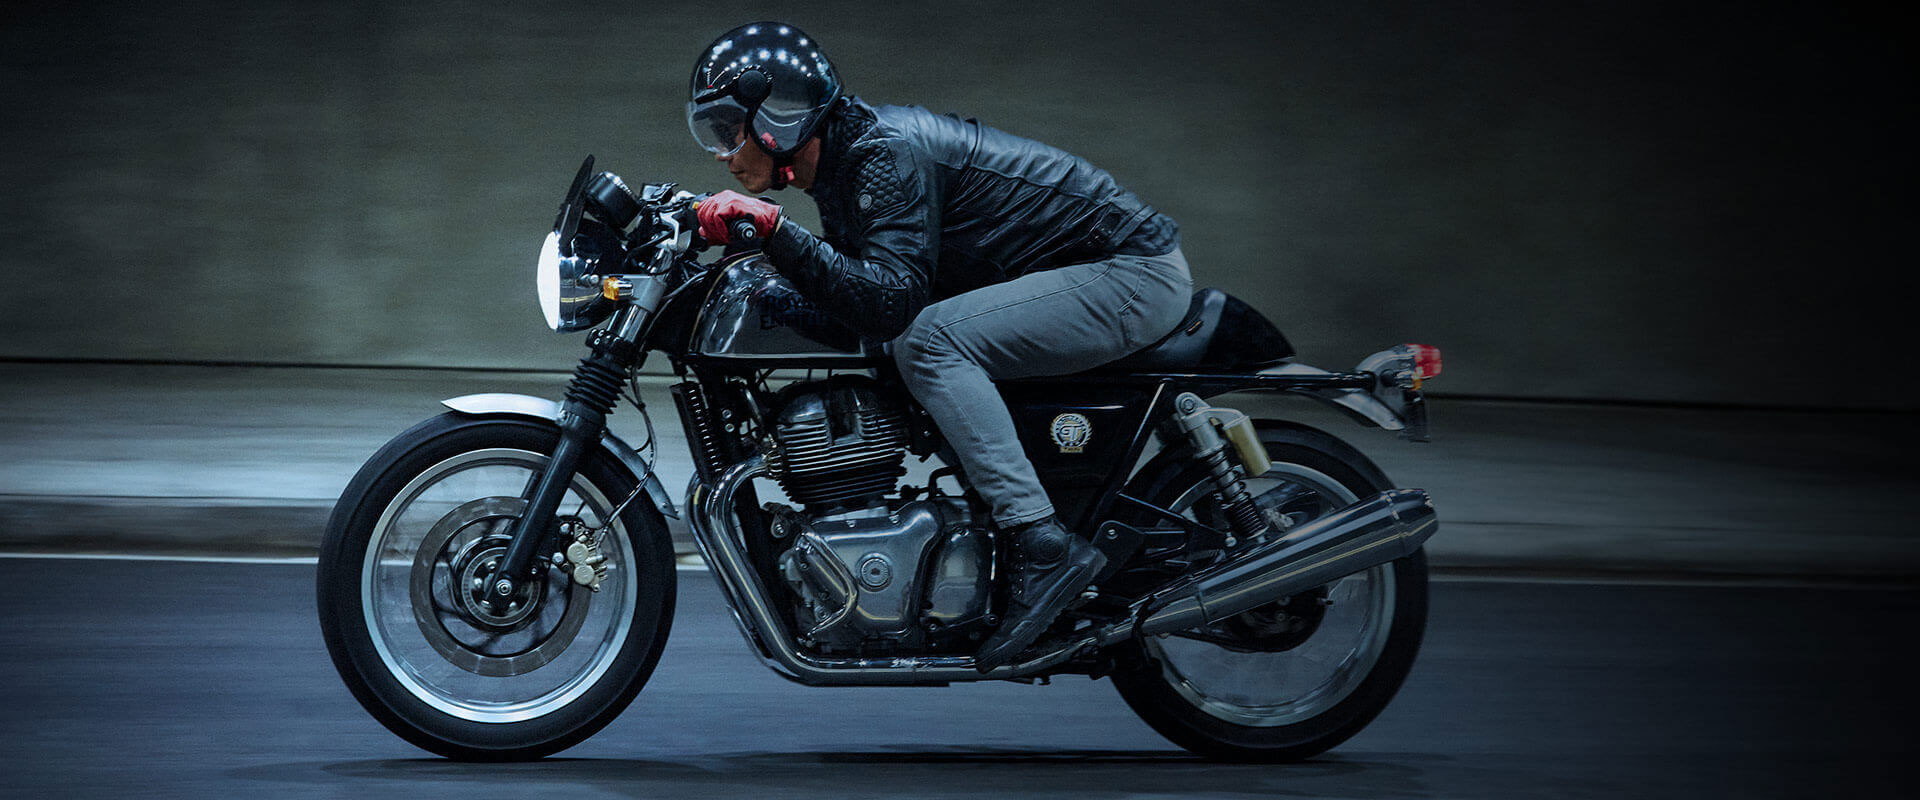 Royal Enfield Continental GT Motorcycle Commercial Production